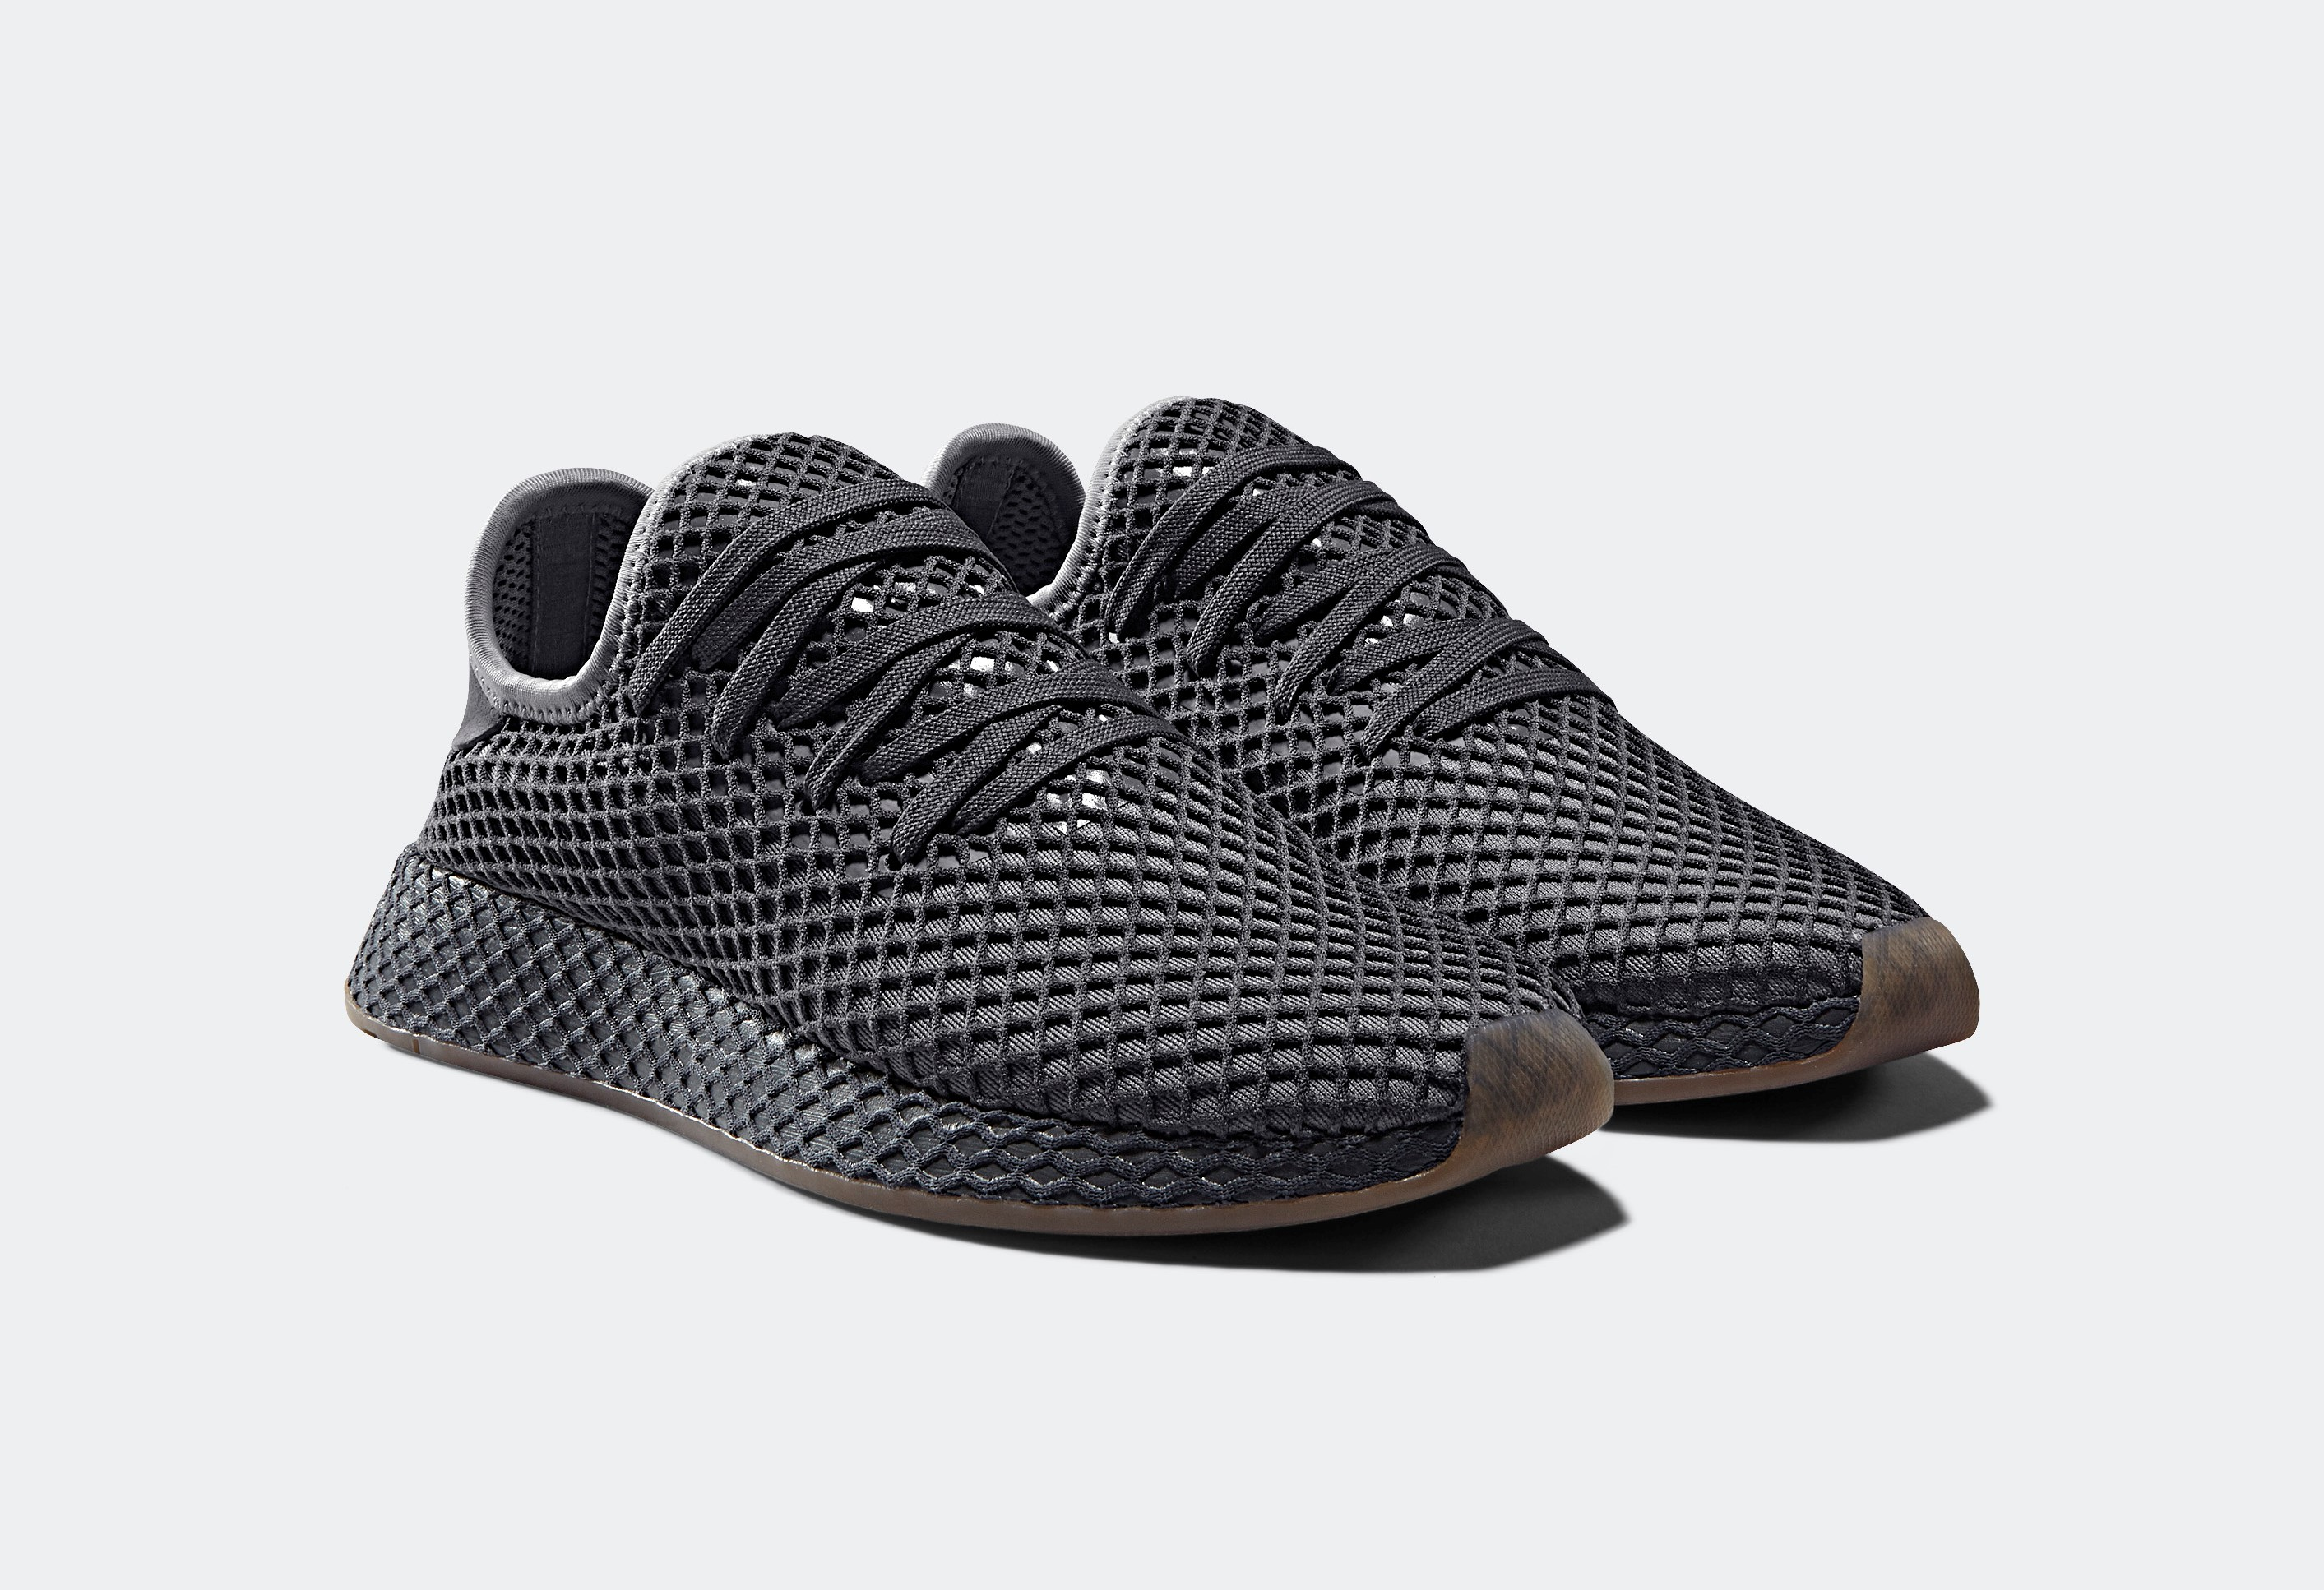 reputable site e7217 a5f53 adidas deerupt runner 10. Apr17